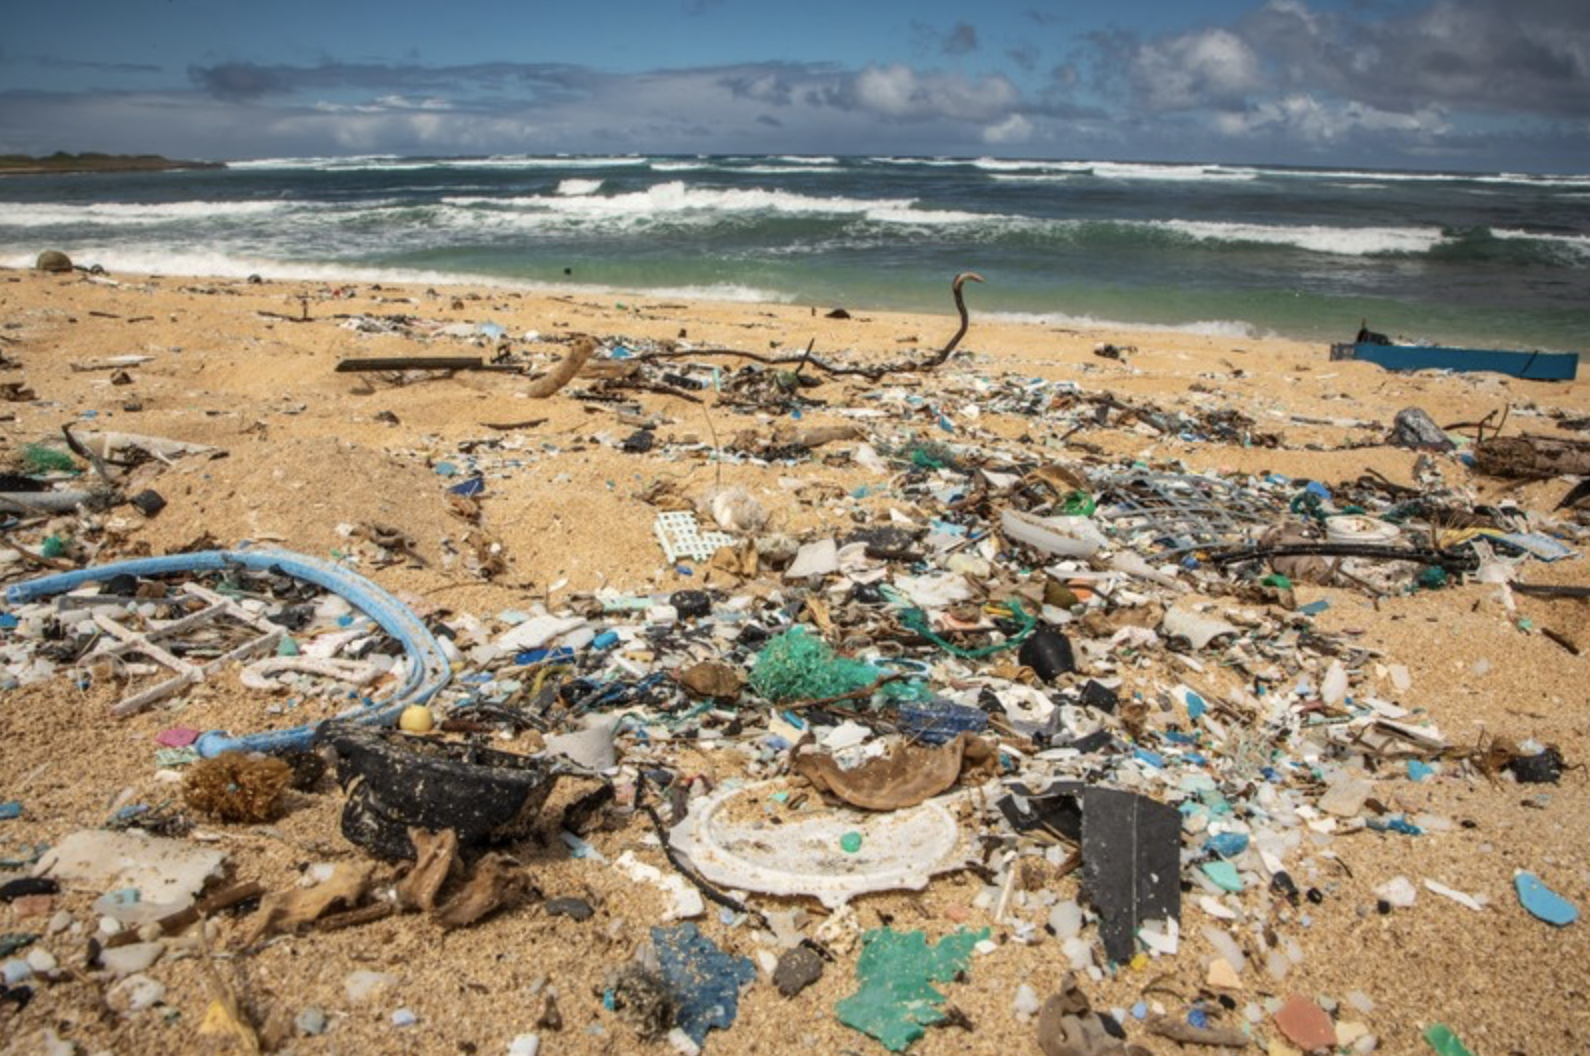 EPA: Waters Around Two Hawai'i Beaches Impaired by Plastic Pollution